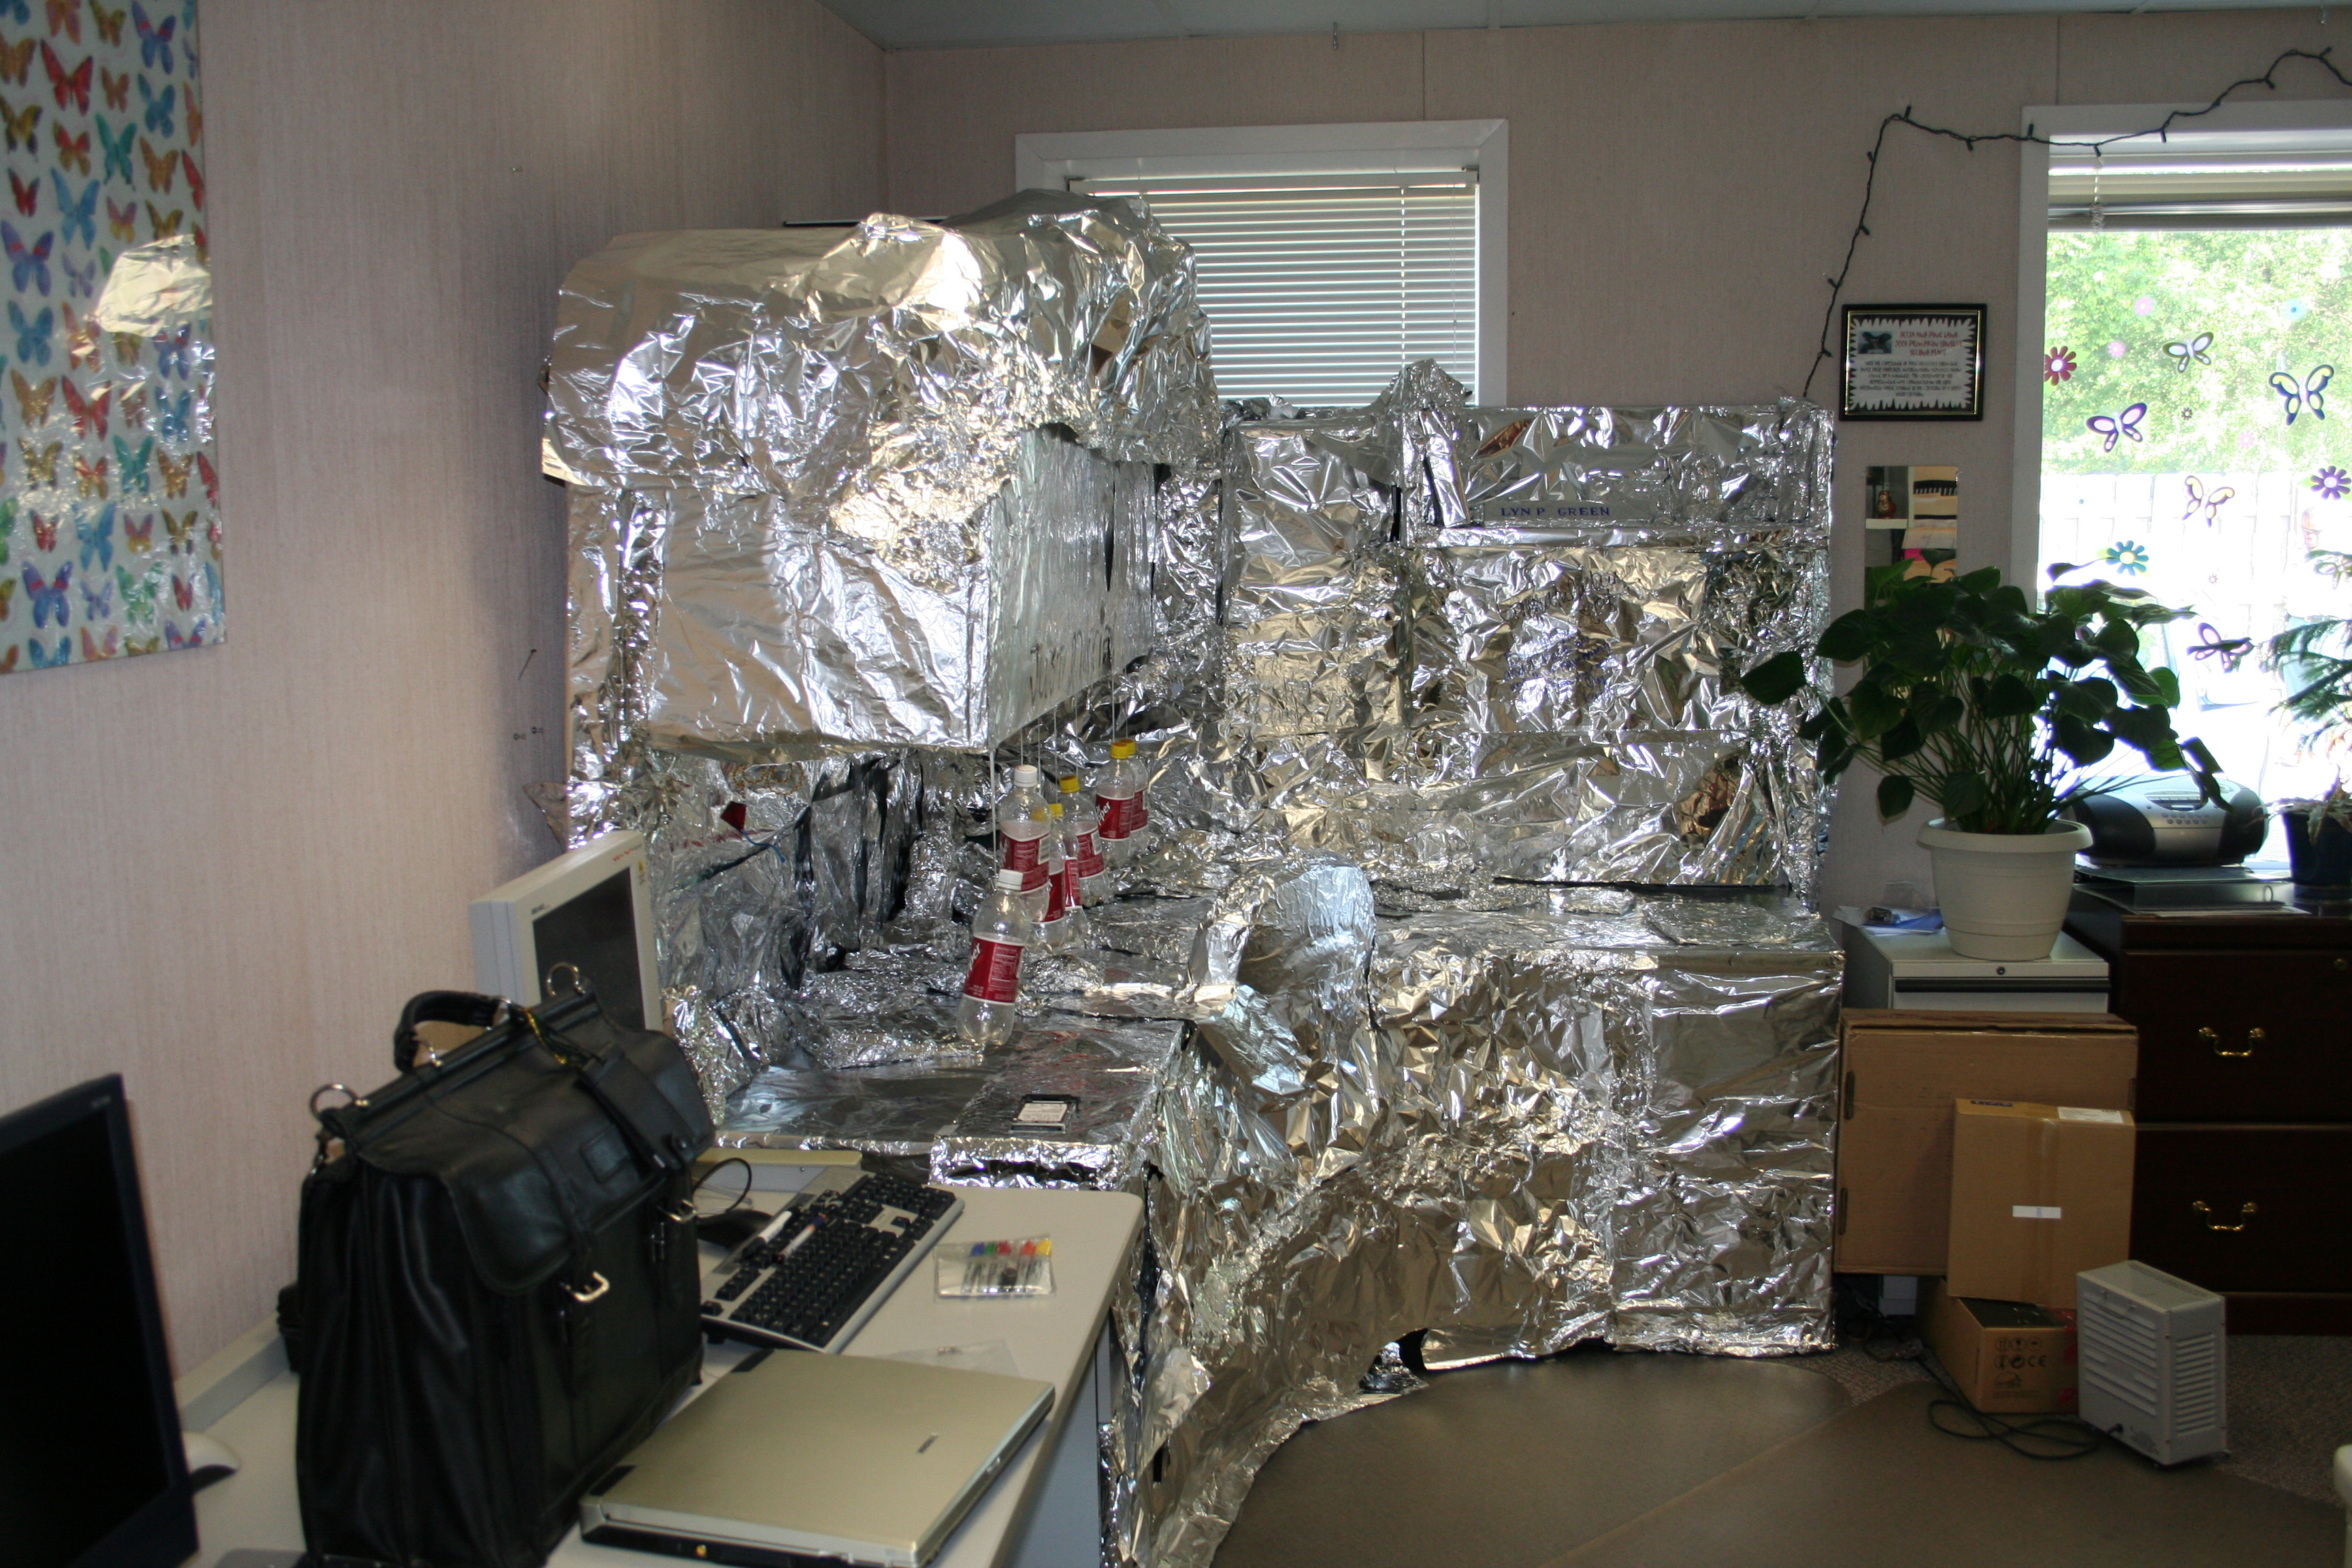 Office Prank Foiling A Desk